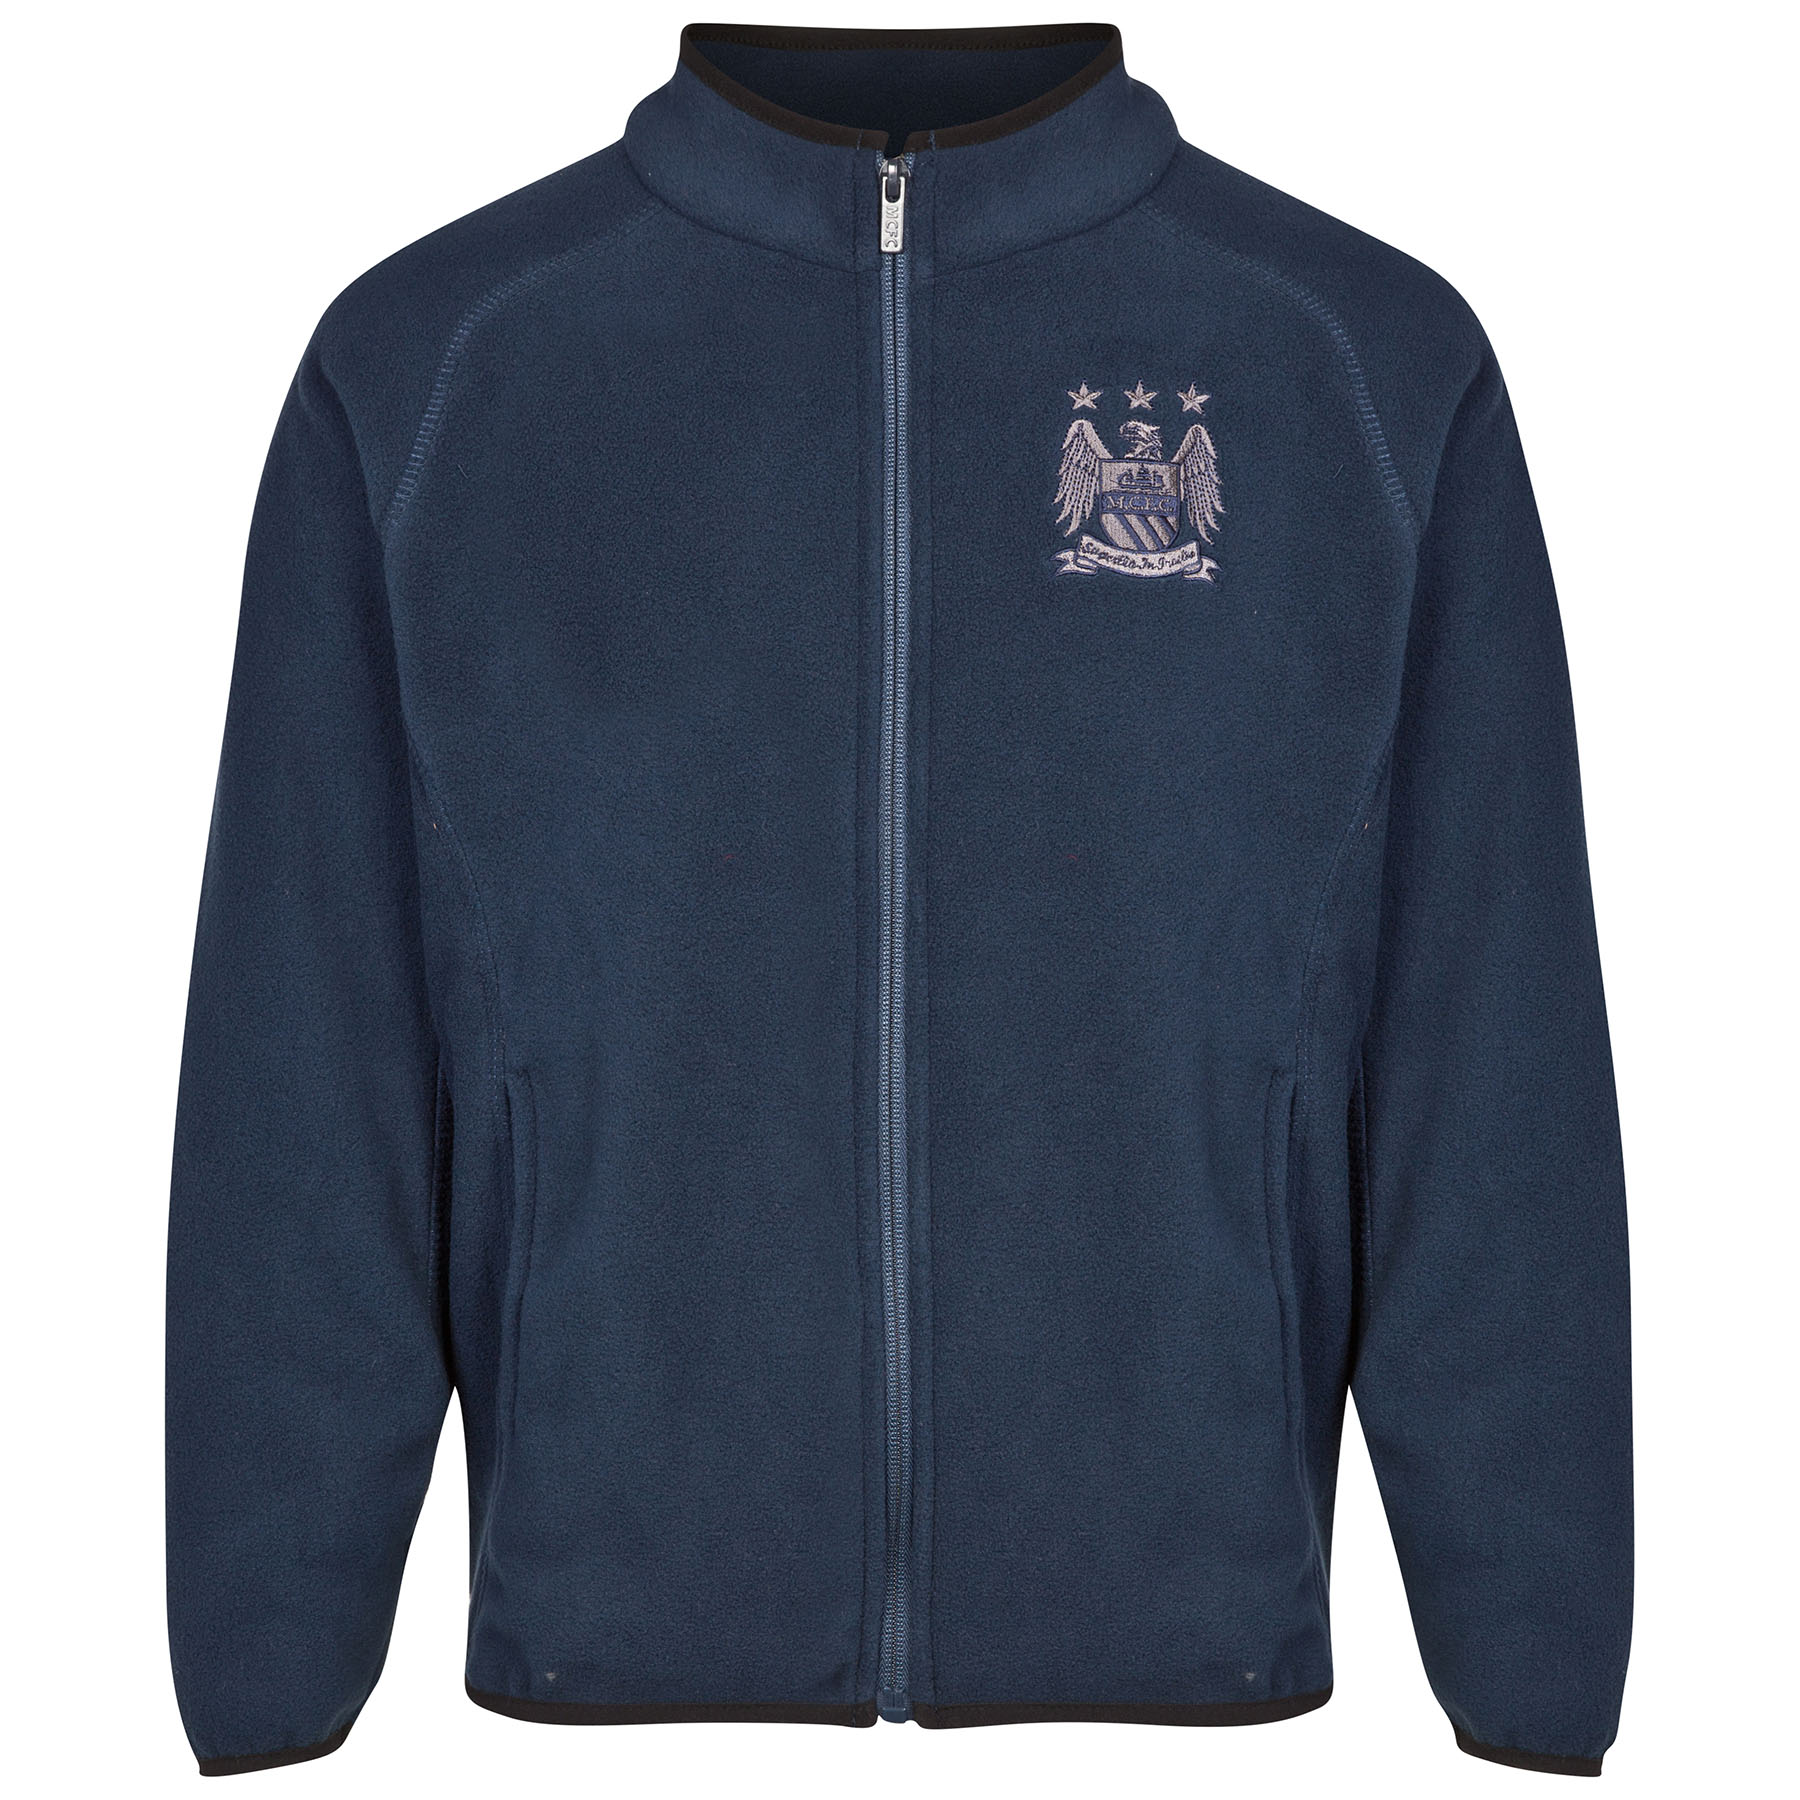 Manchester City Essential Fleece - Navy - Older Boys